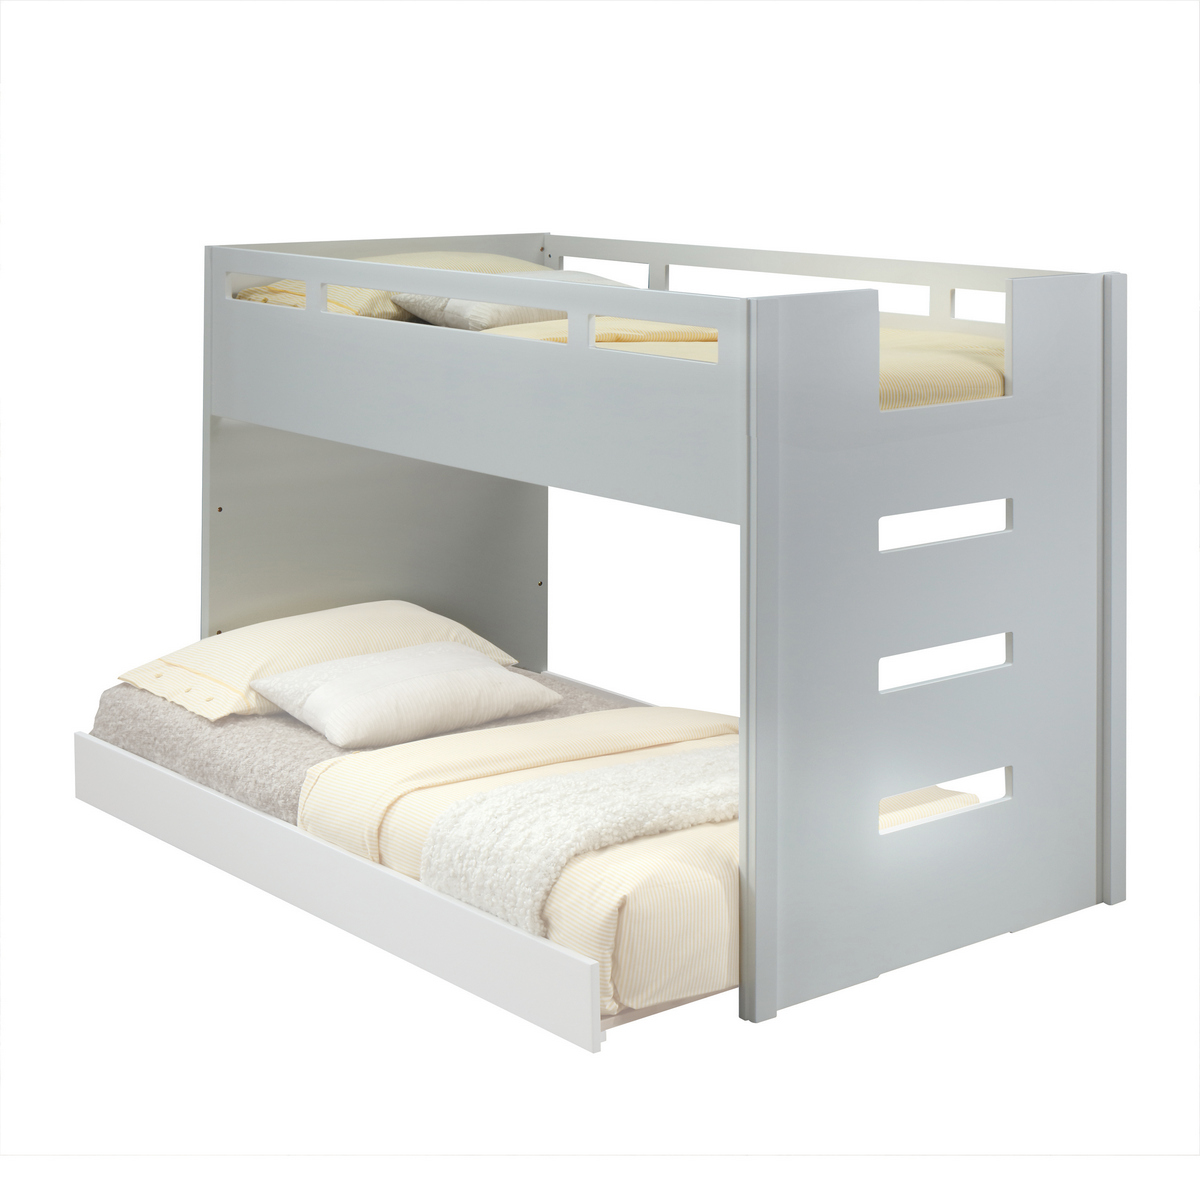 Acme Bed